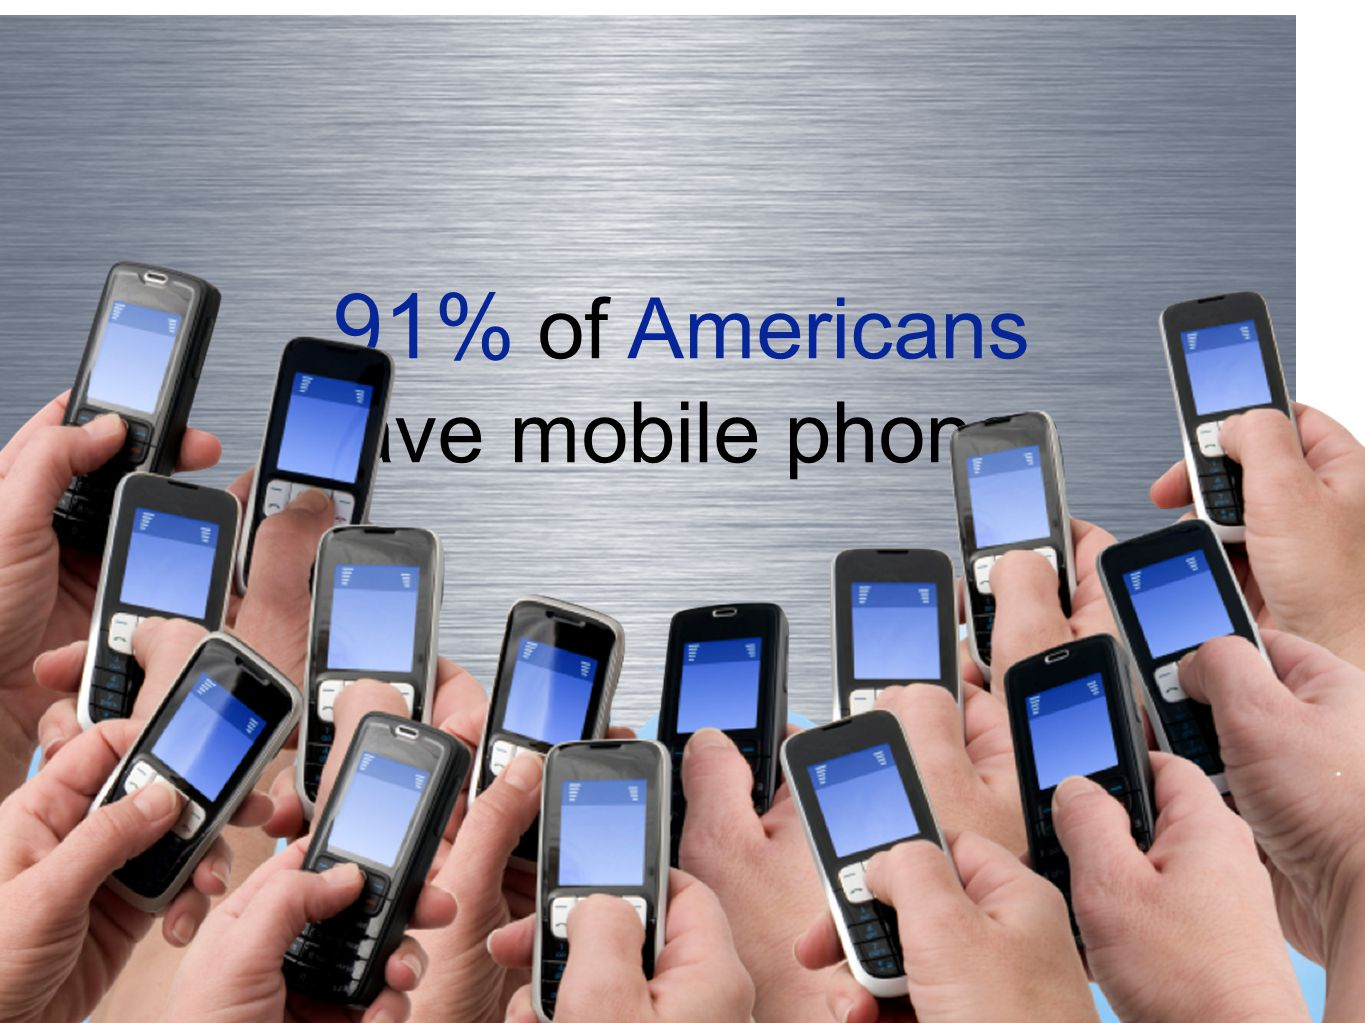 91% of Americans have mobile phones